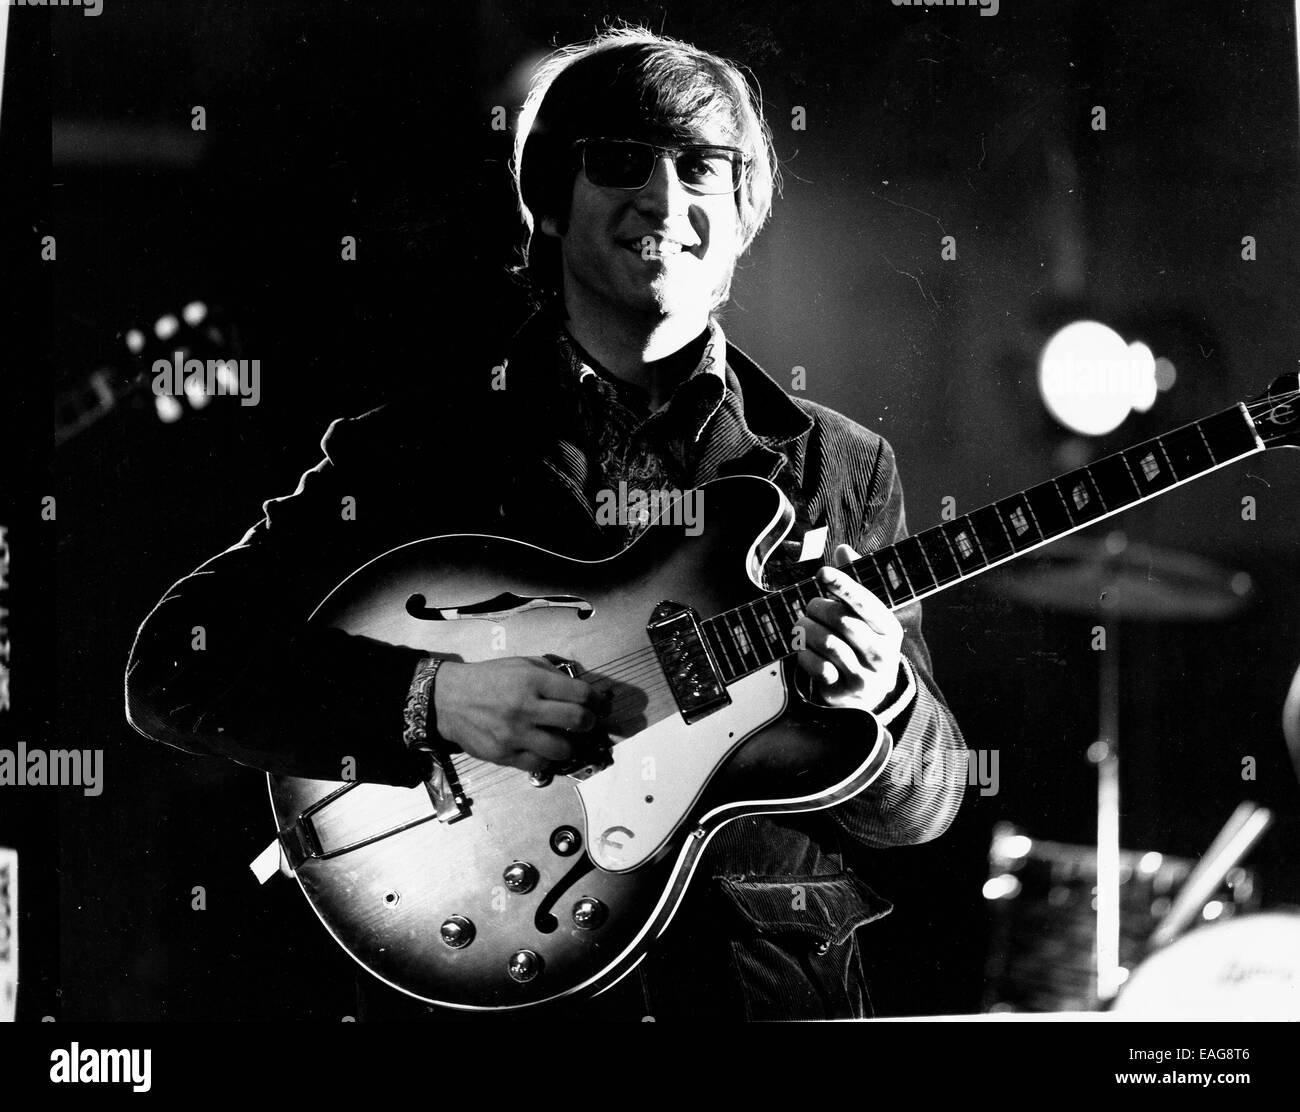 Singer And Songwriter JOHN LENNON 1940 1980 Was A Member Of The Beatles Legendary English Rock Band PICTURED Lennon Playing Guitar During